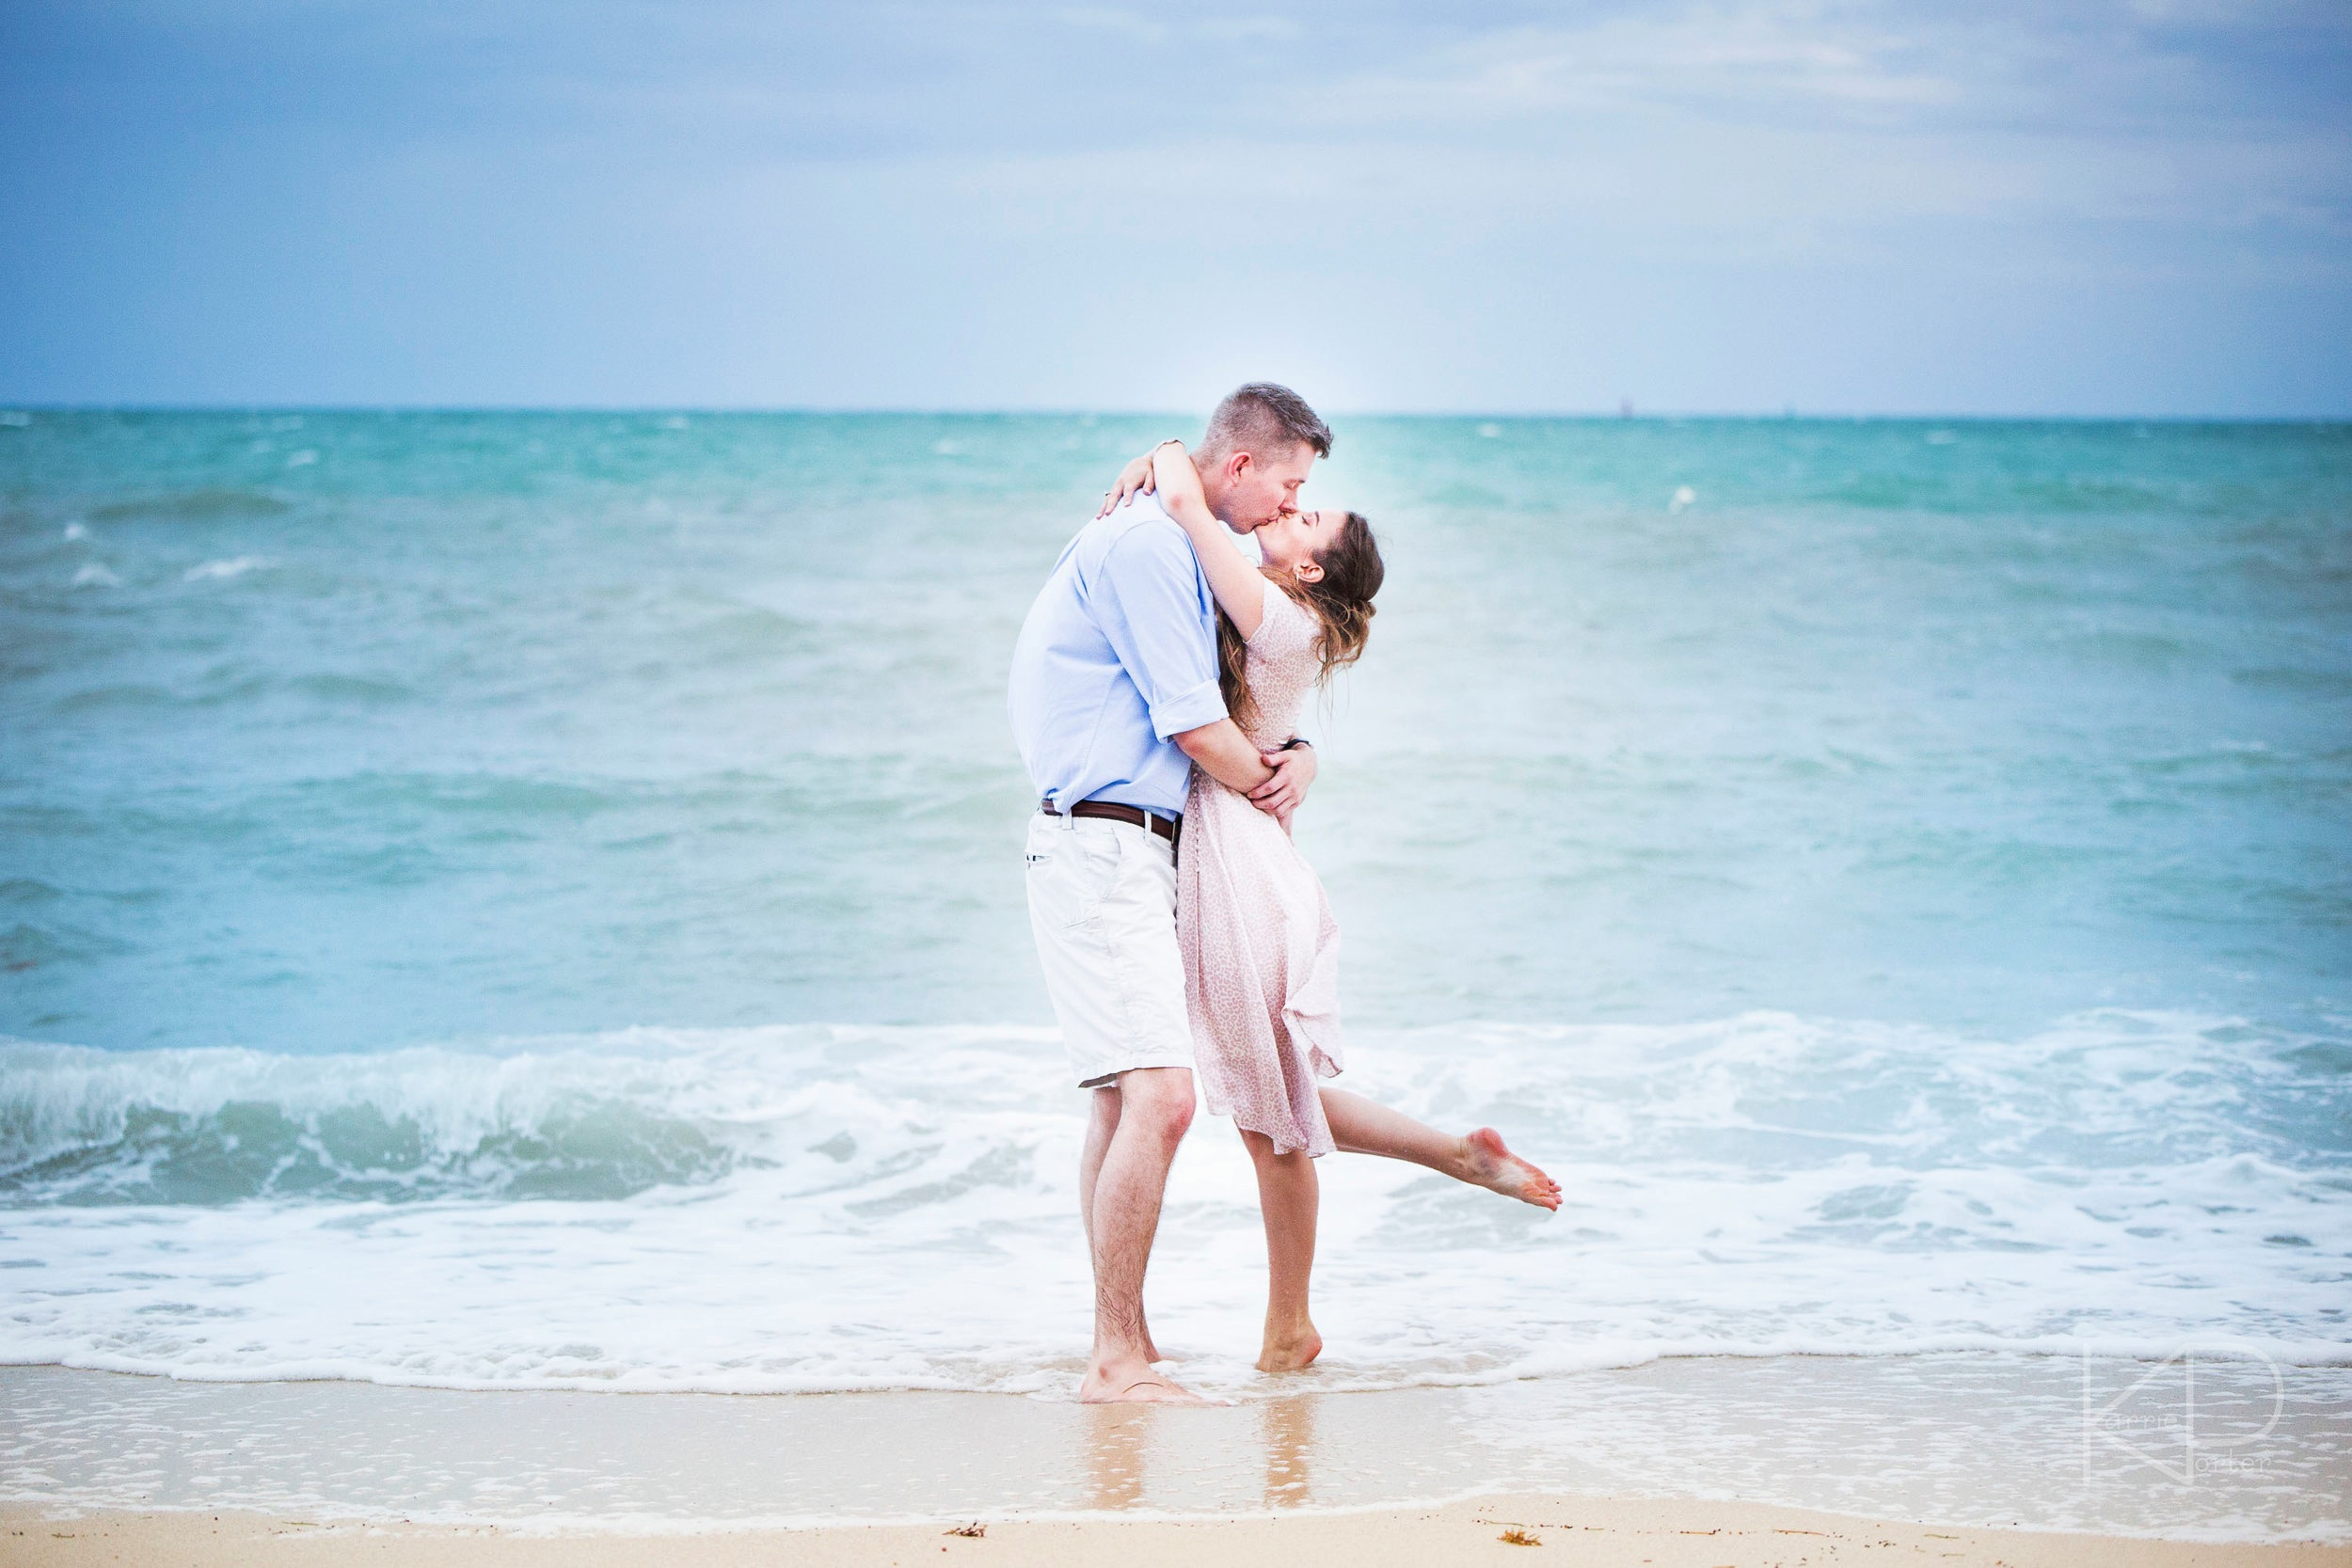 Engagement+Photographer+in+Key+West+captures+couples+portraits+on+the+beach.jpg